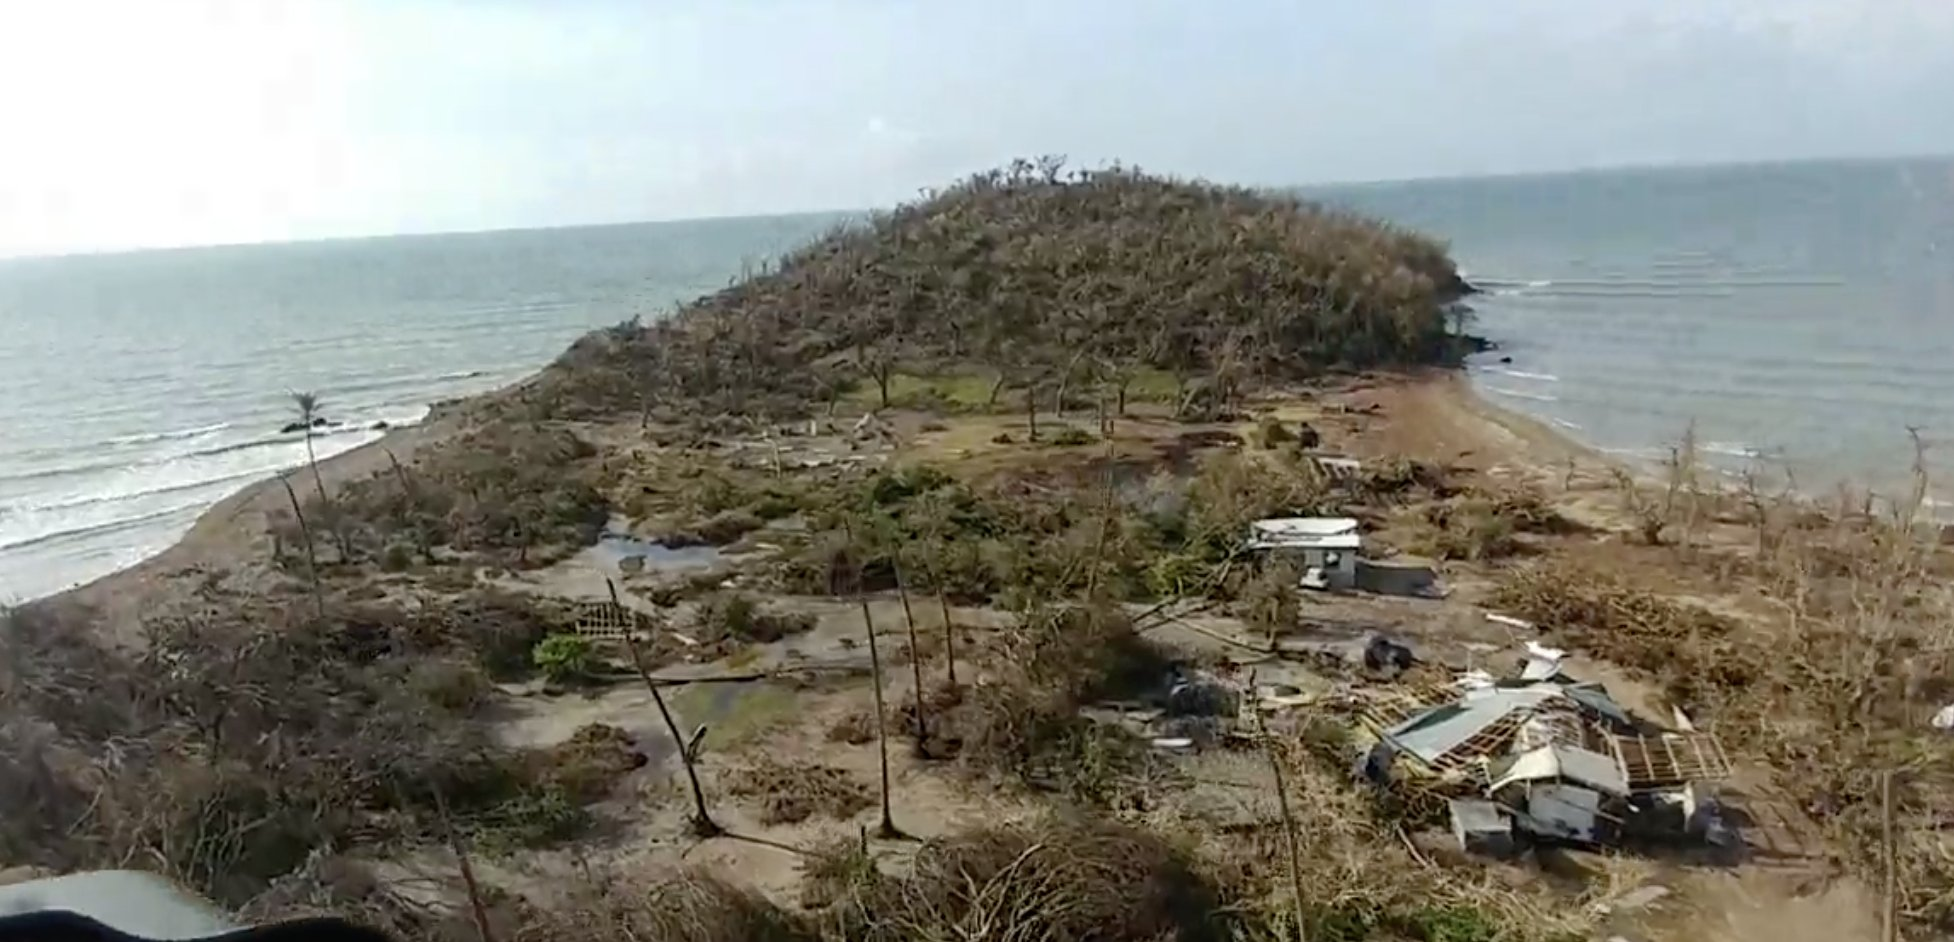 The Cayo Santiago Research Station in Puerto Rico was heavily damaged by Hurricane Maria, which destroyed the buildings, feeding corrals, and all but one of the water cisterns necessary to support a free-ranging population of monkeys. A University of Washington faculty member is among the researchers who study there and are mobilizing a relief effort for the community.